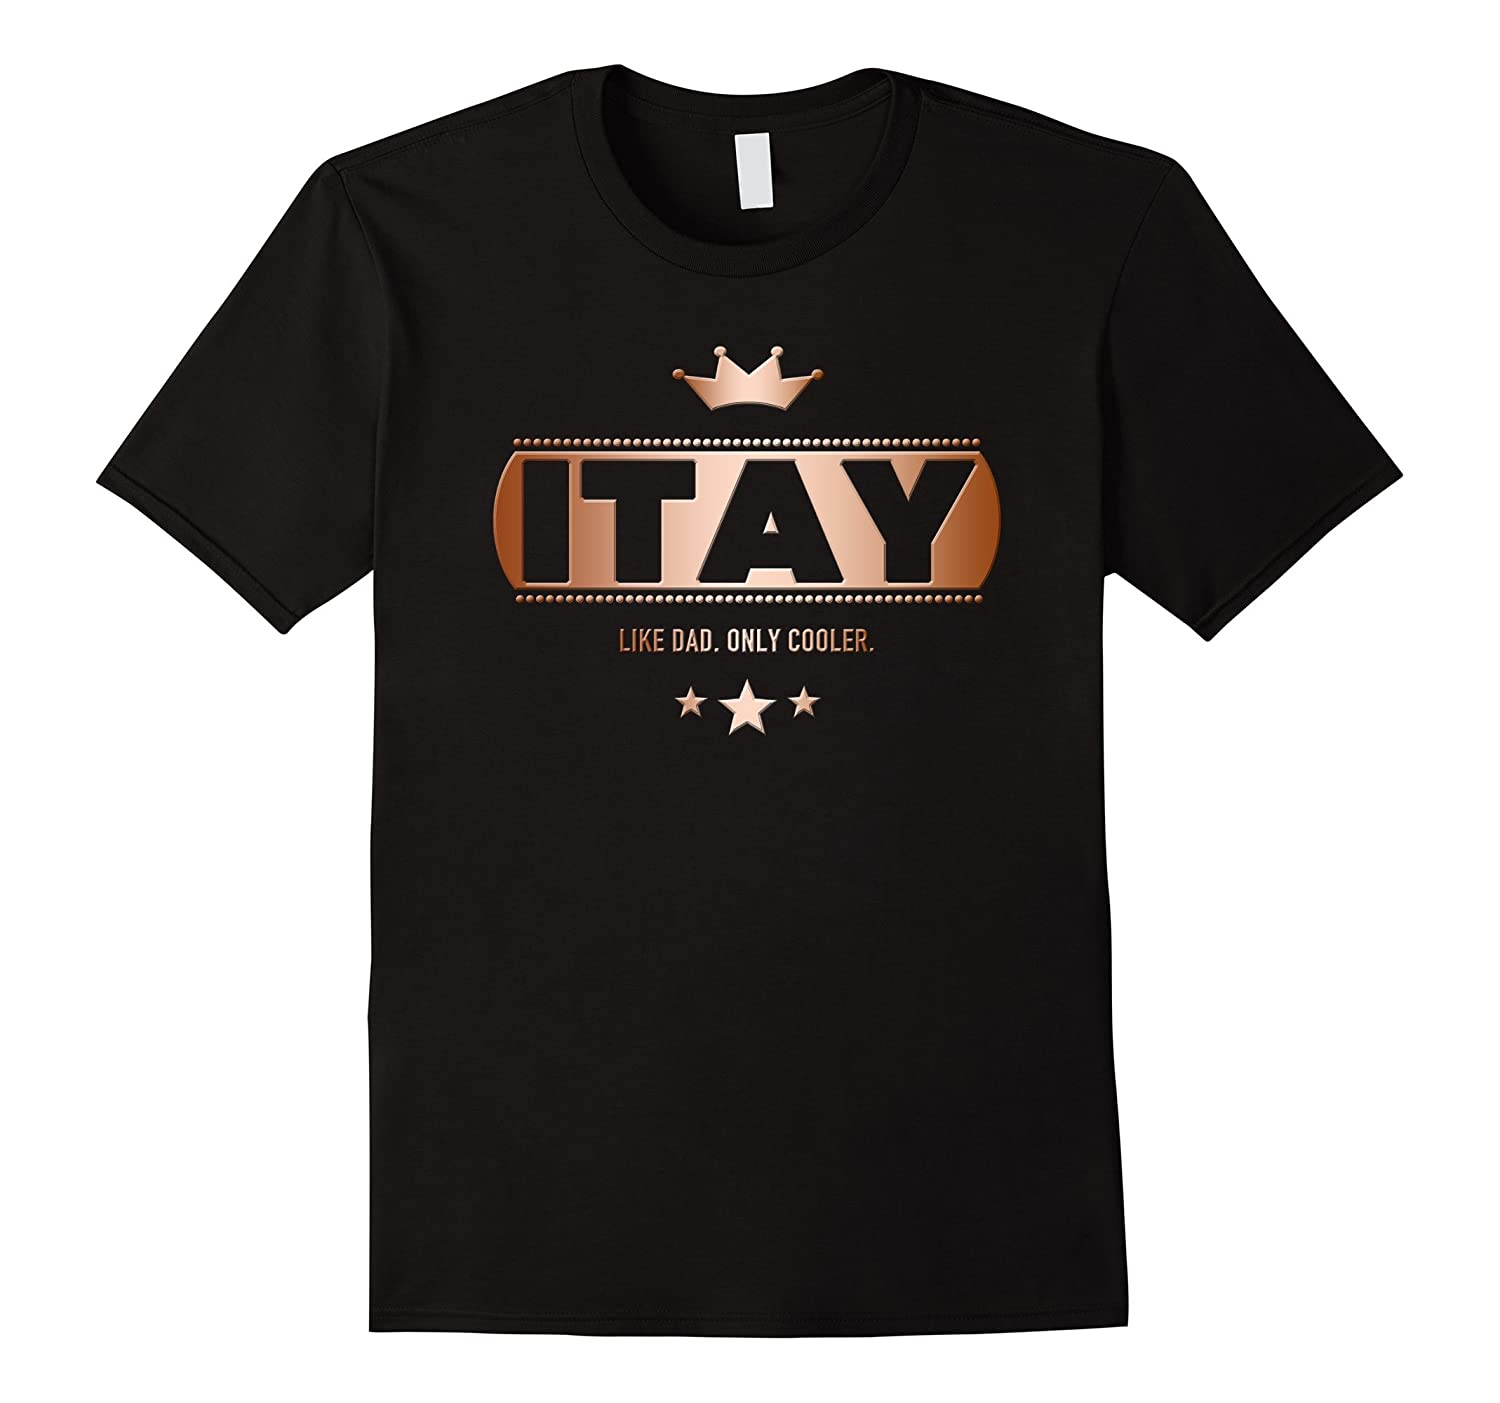 Itay Like Dad Only Cooler Tee-Shirt for a Filipino Father-Loveshirt